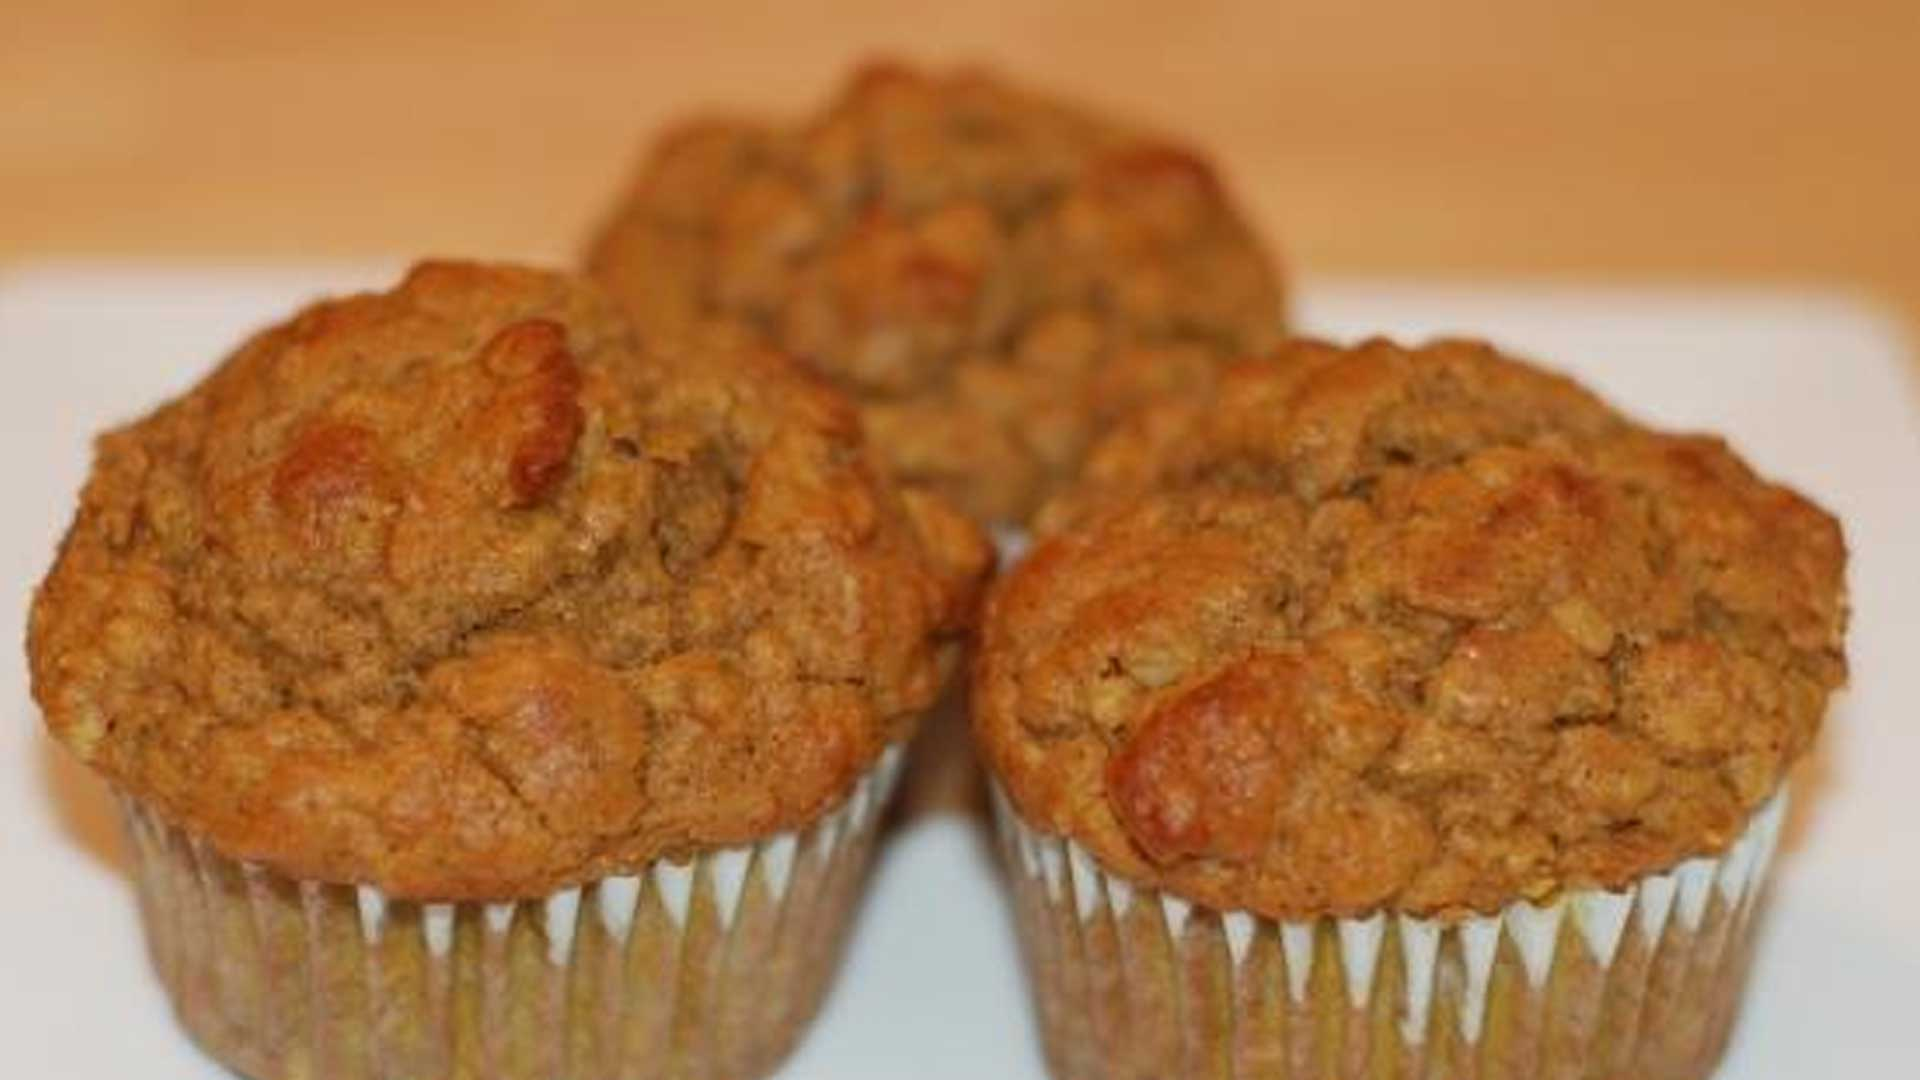 Pumpkin Oat Bran Muffins- Get Fueled Up for Your Personal Training Session